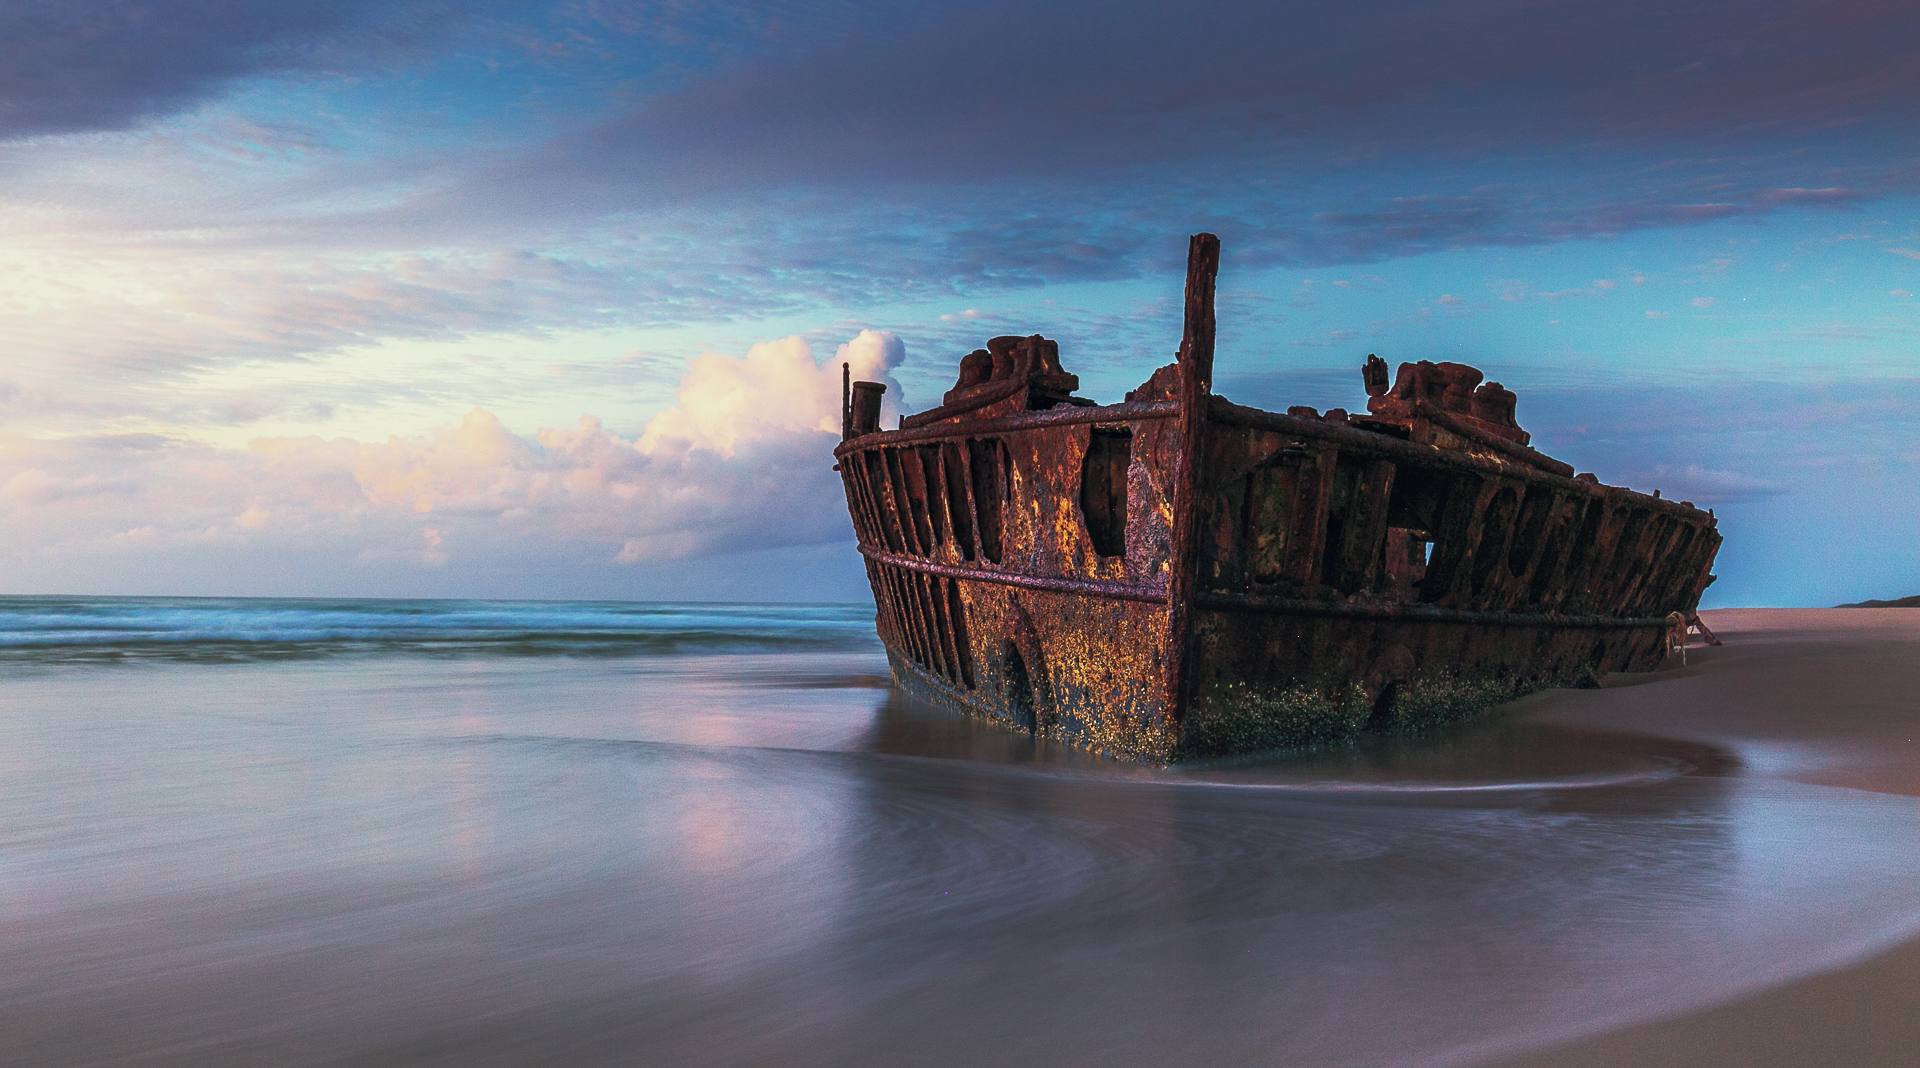 Shipwreck, one of the things to do in Fraser Island